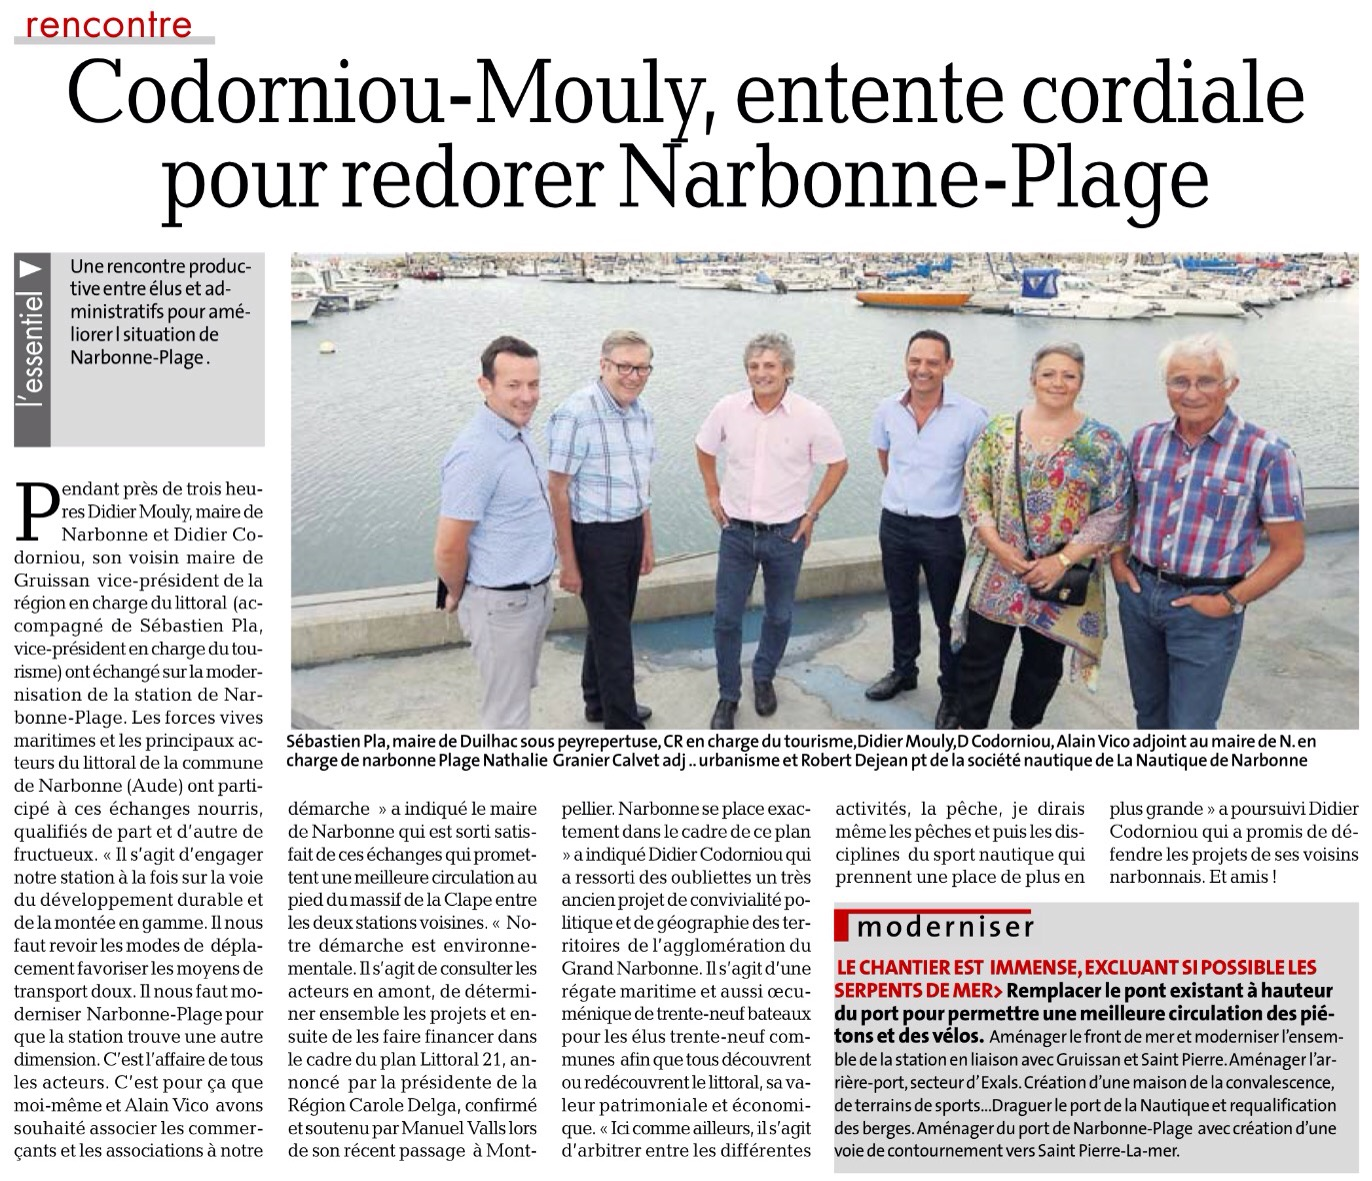 Rencontres narbonne plage